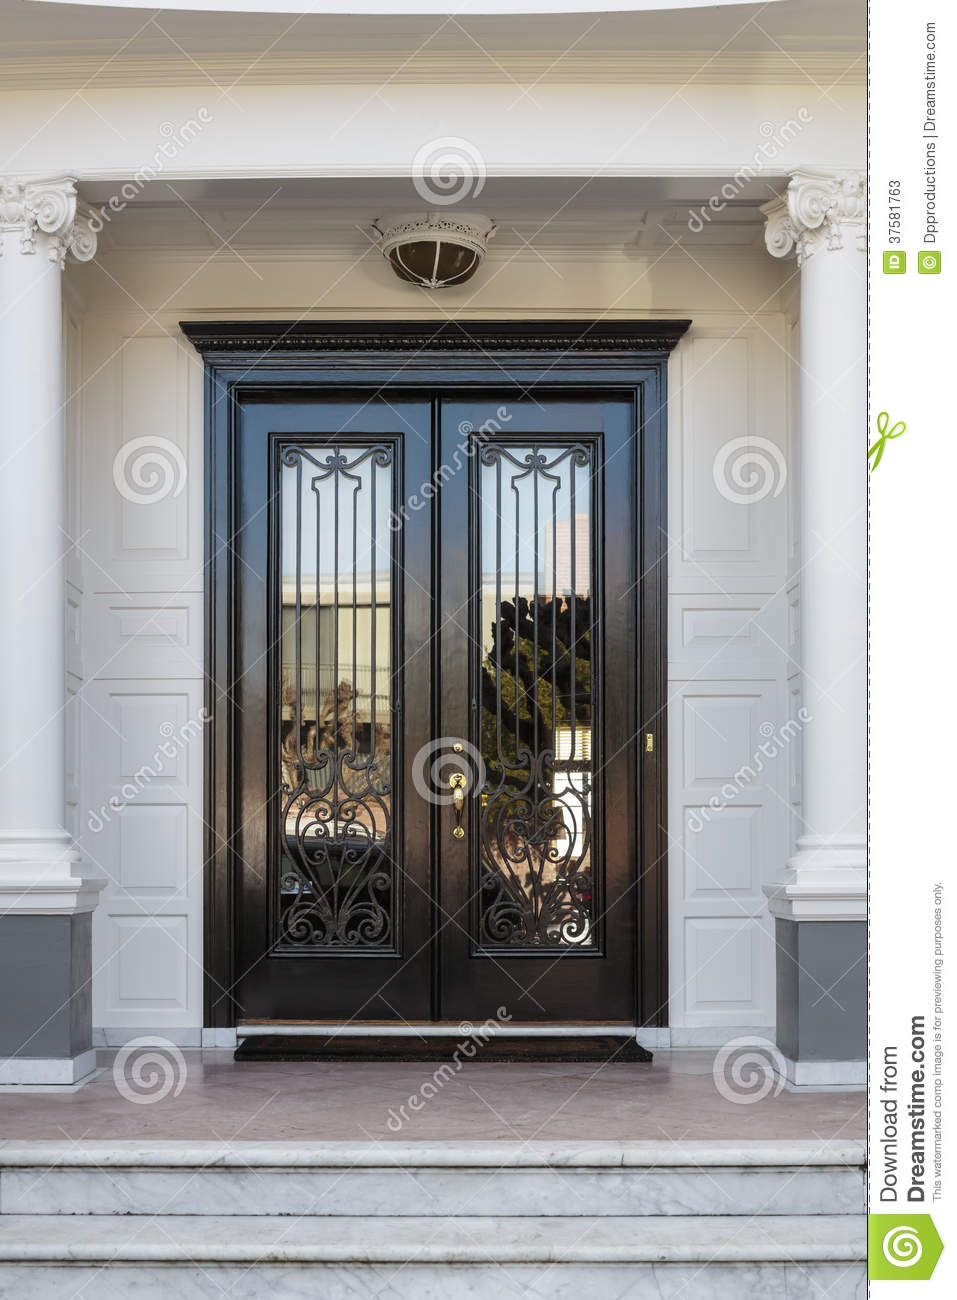 known more post tell will that you with many front and ideas for design doors glass people pin the designs about door this looking